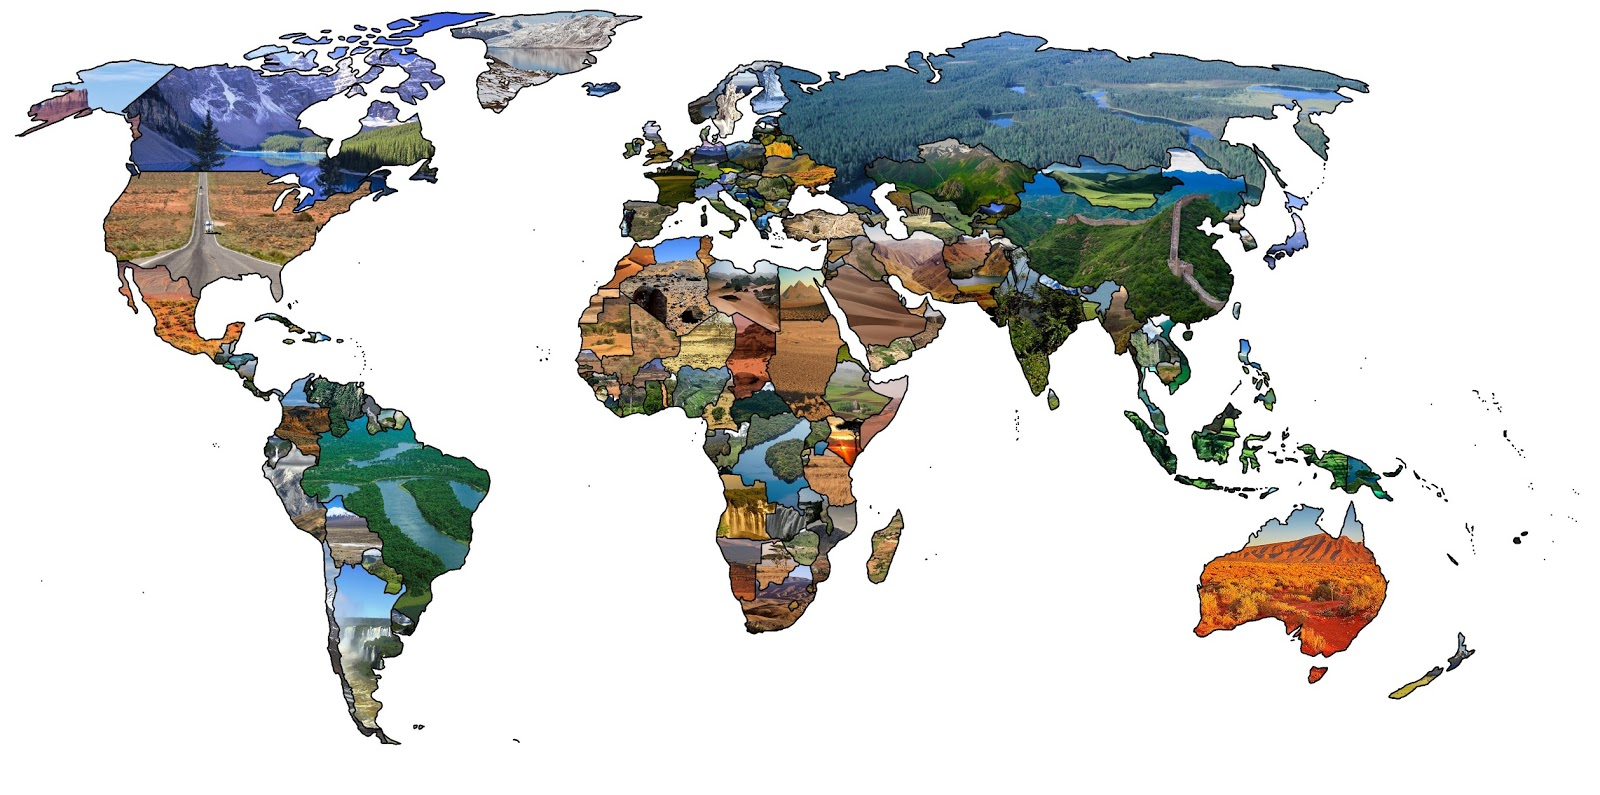 Landscapes (more or less typical) by country